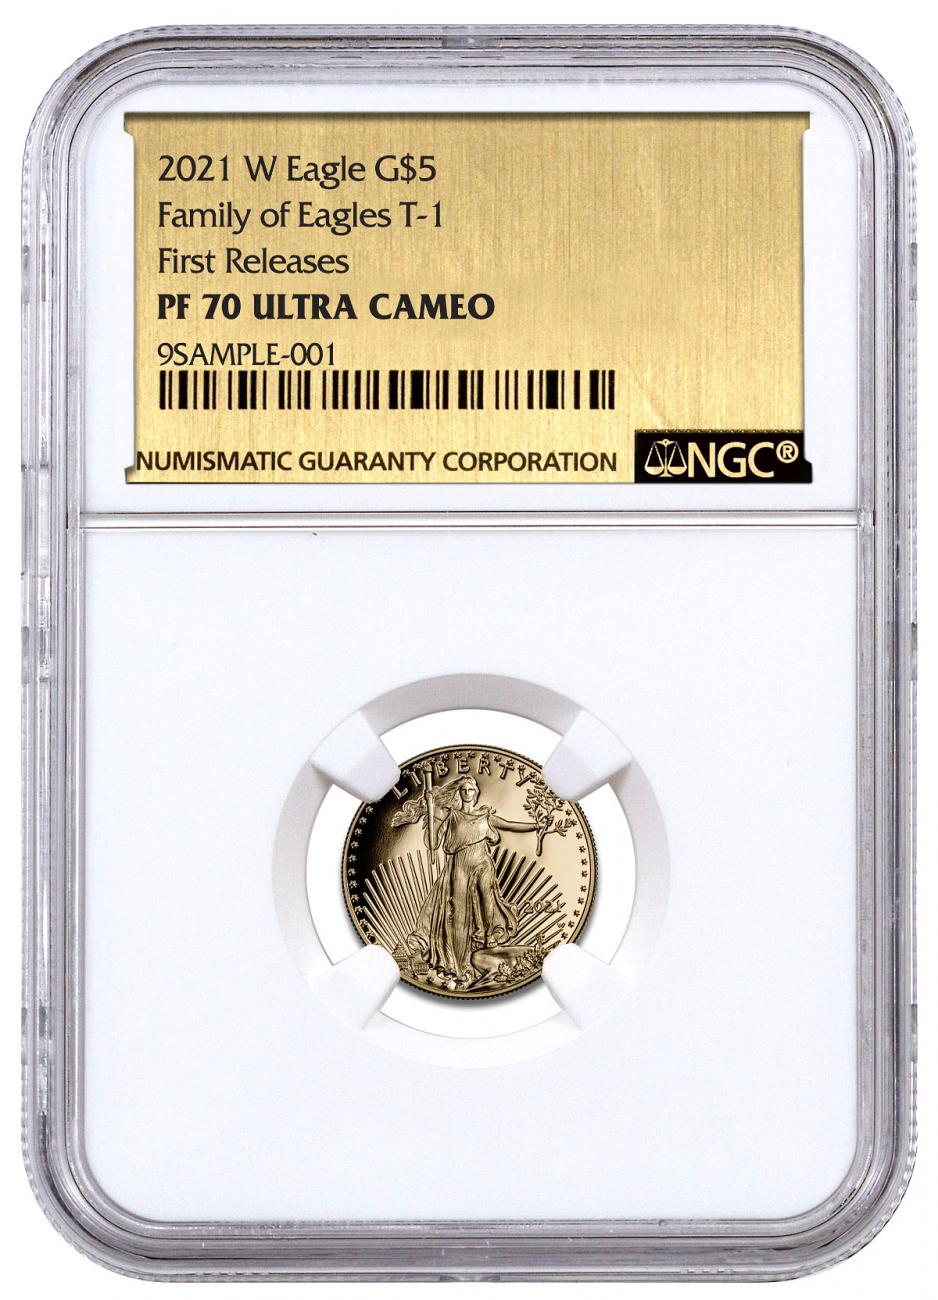 2021-W 1/10 oz Gold American Eagle Proof T-1 $5 NGC PF70 UC FR Exclusive Gold Foil Label